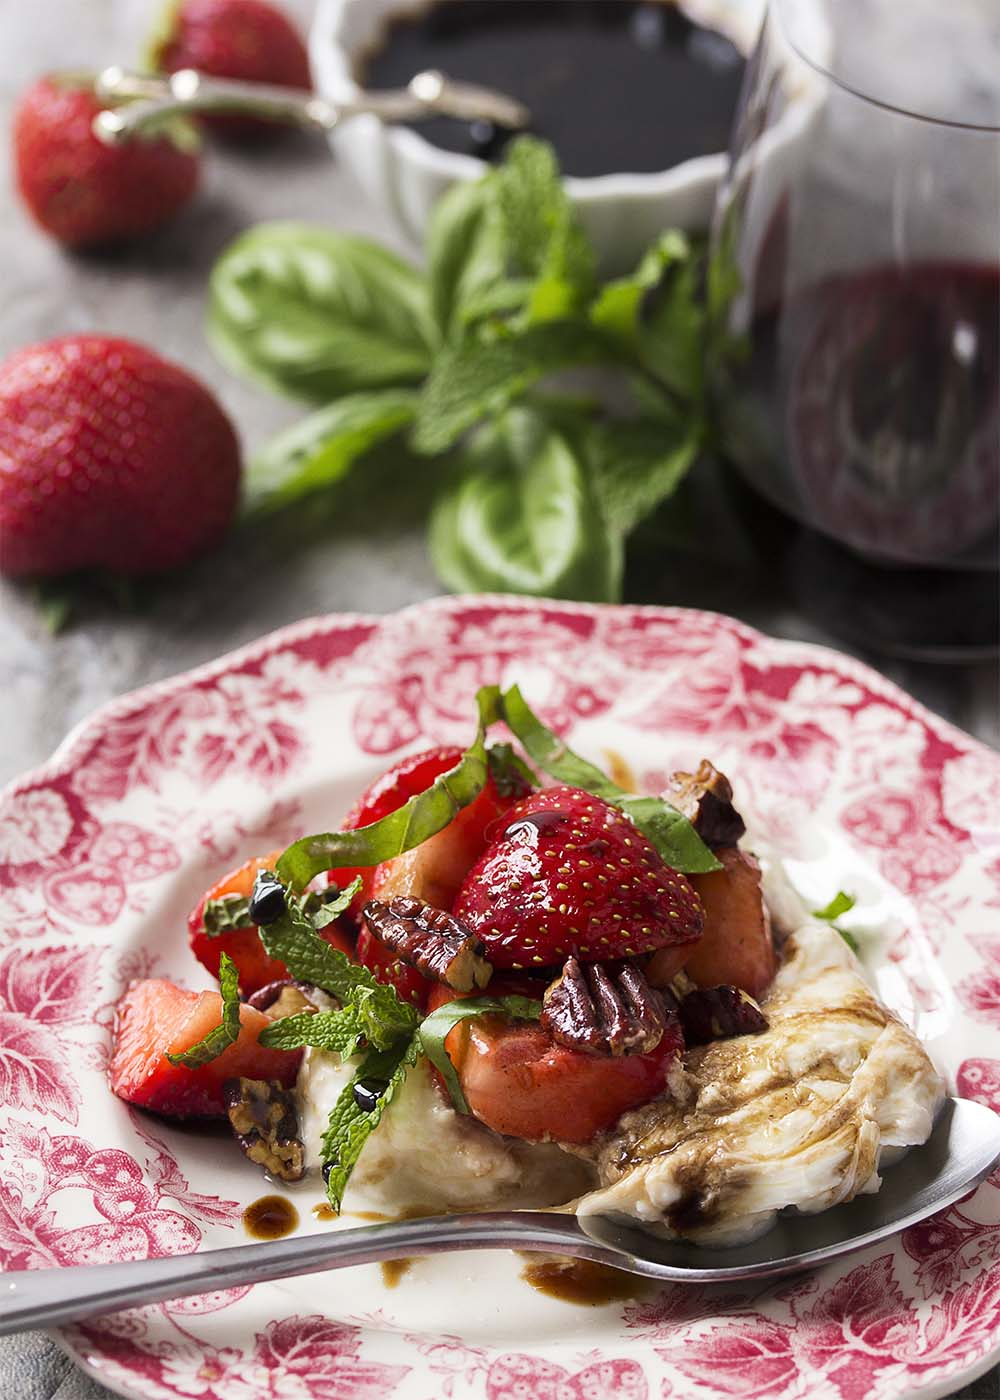 A small salad plate with a strawberry motif piled with strawberries, burrata, herbs, and pecans, and drizzled with balsamic glaze.